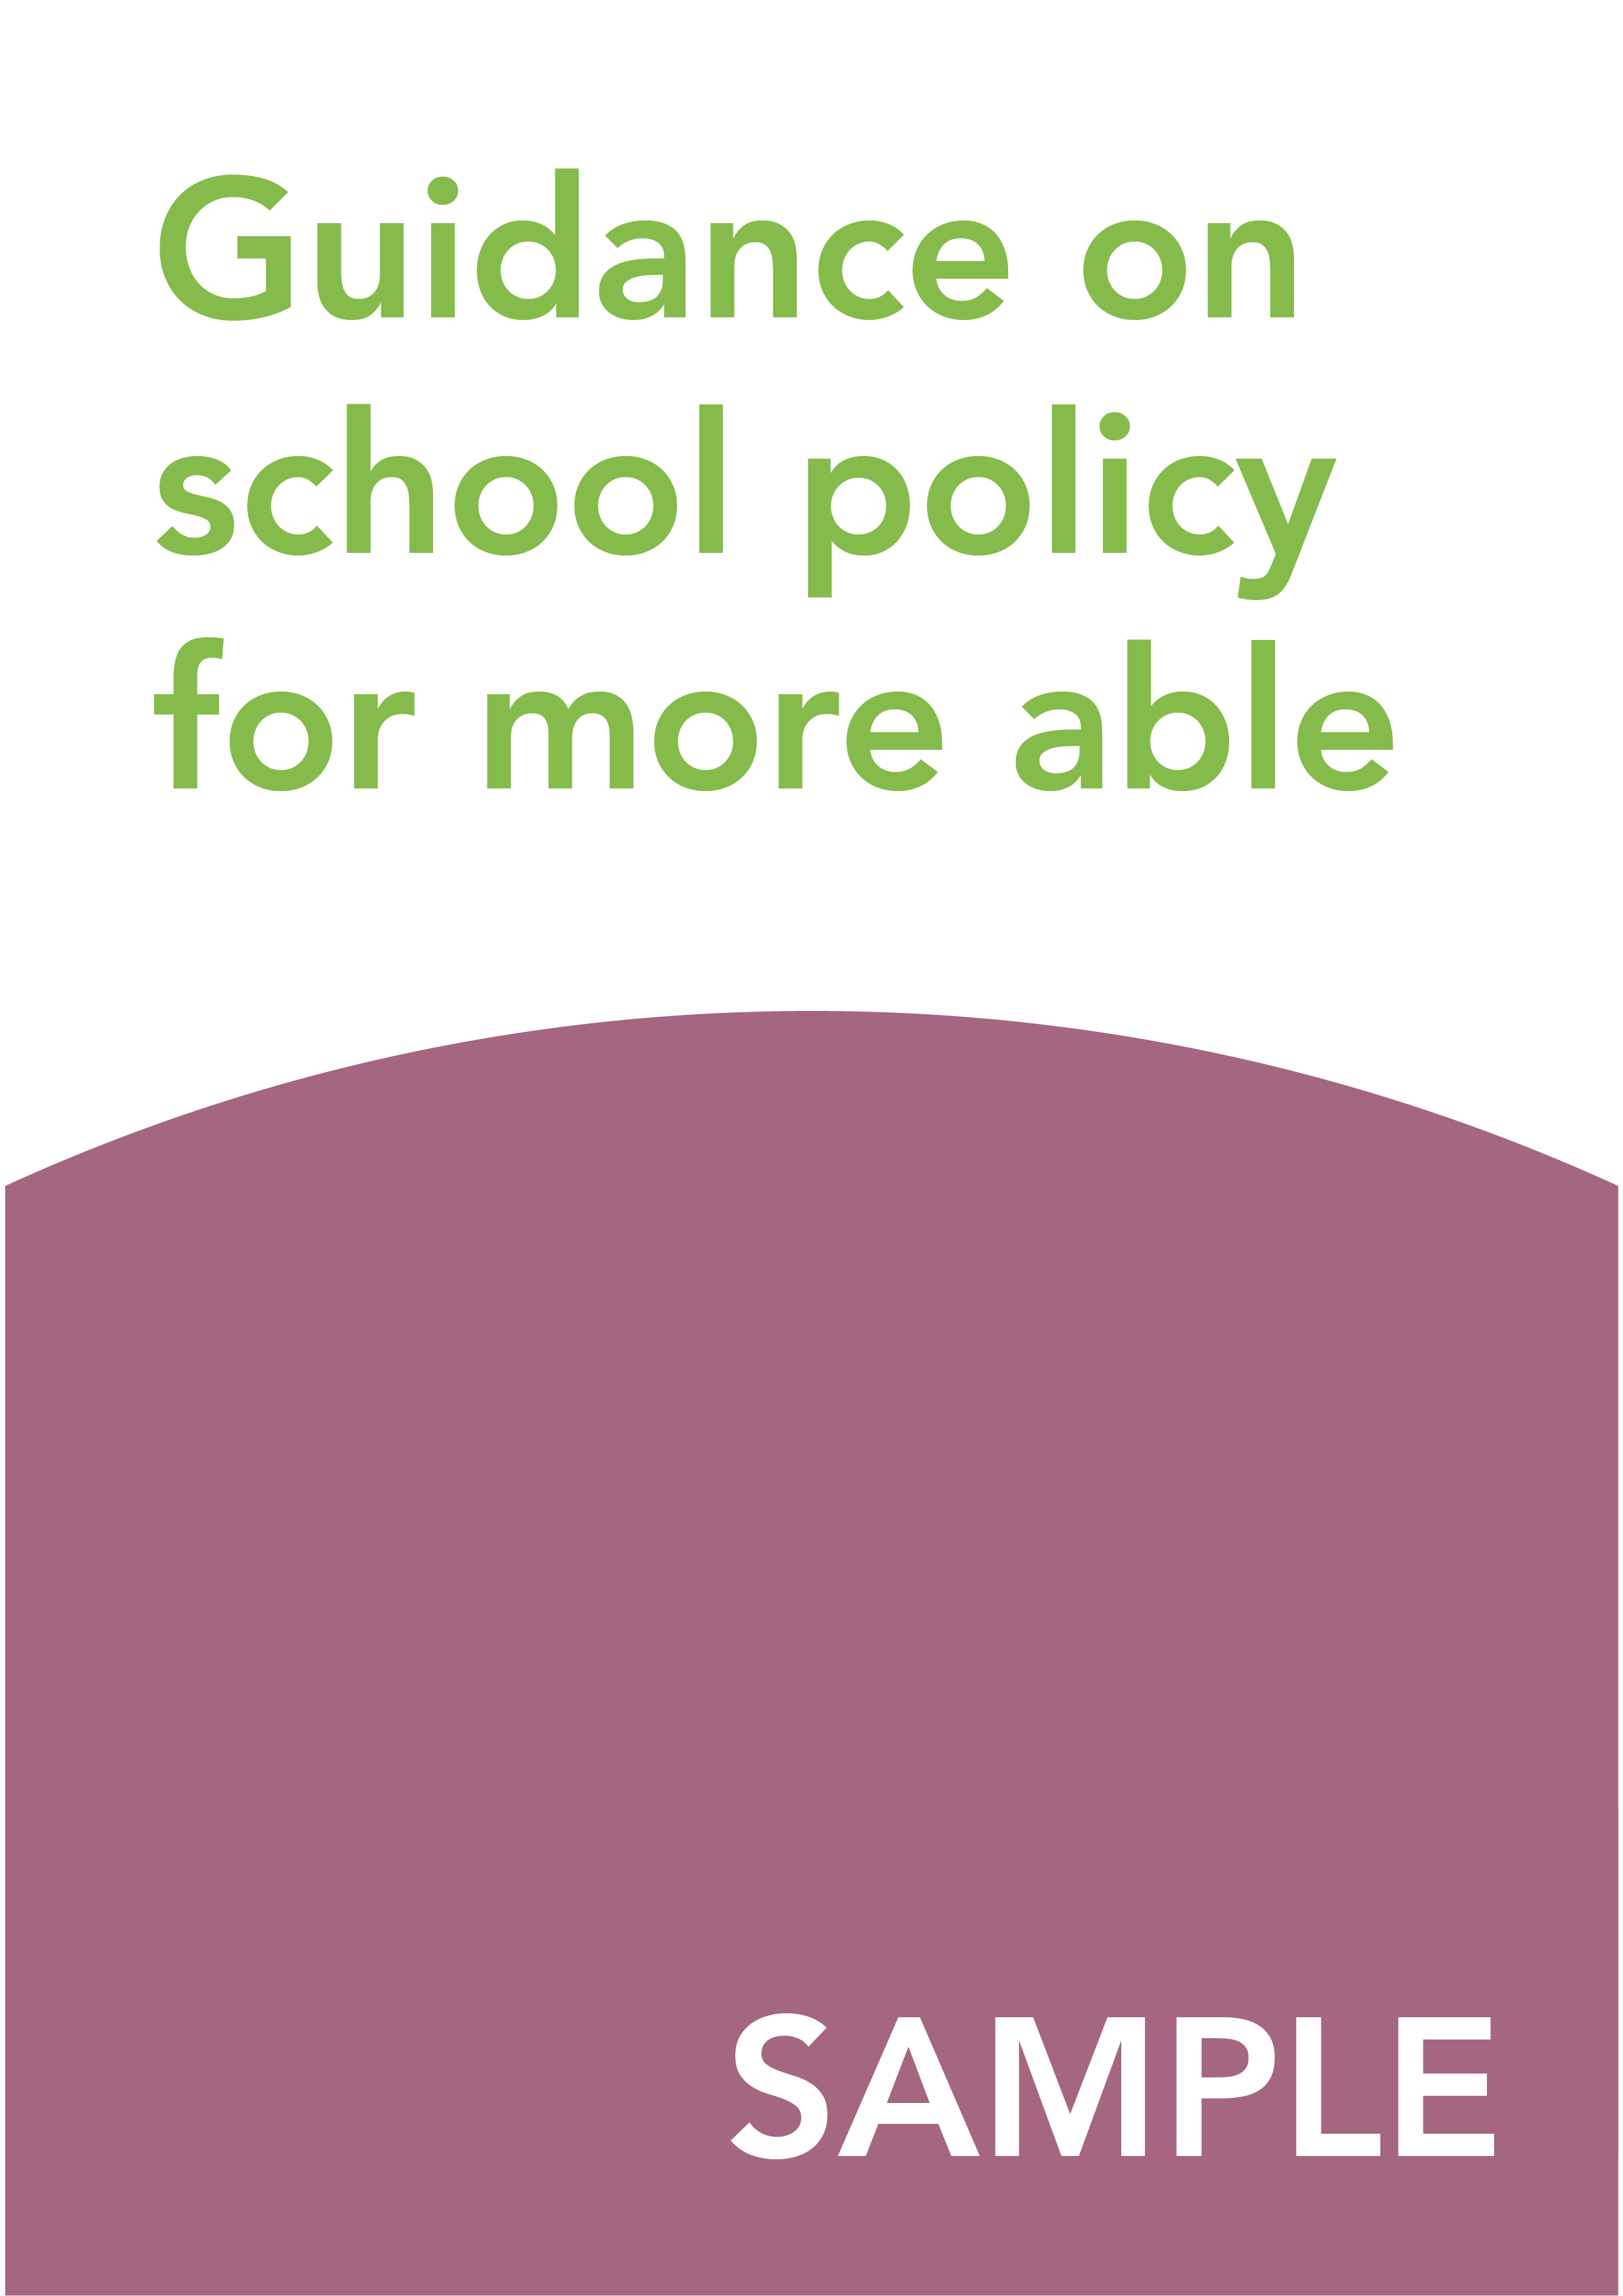 Guidance on school policy